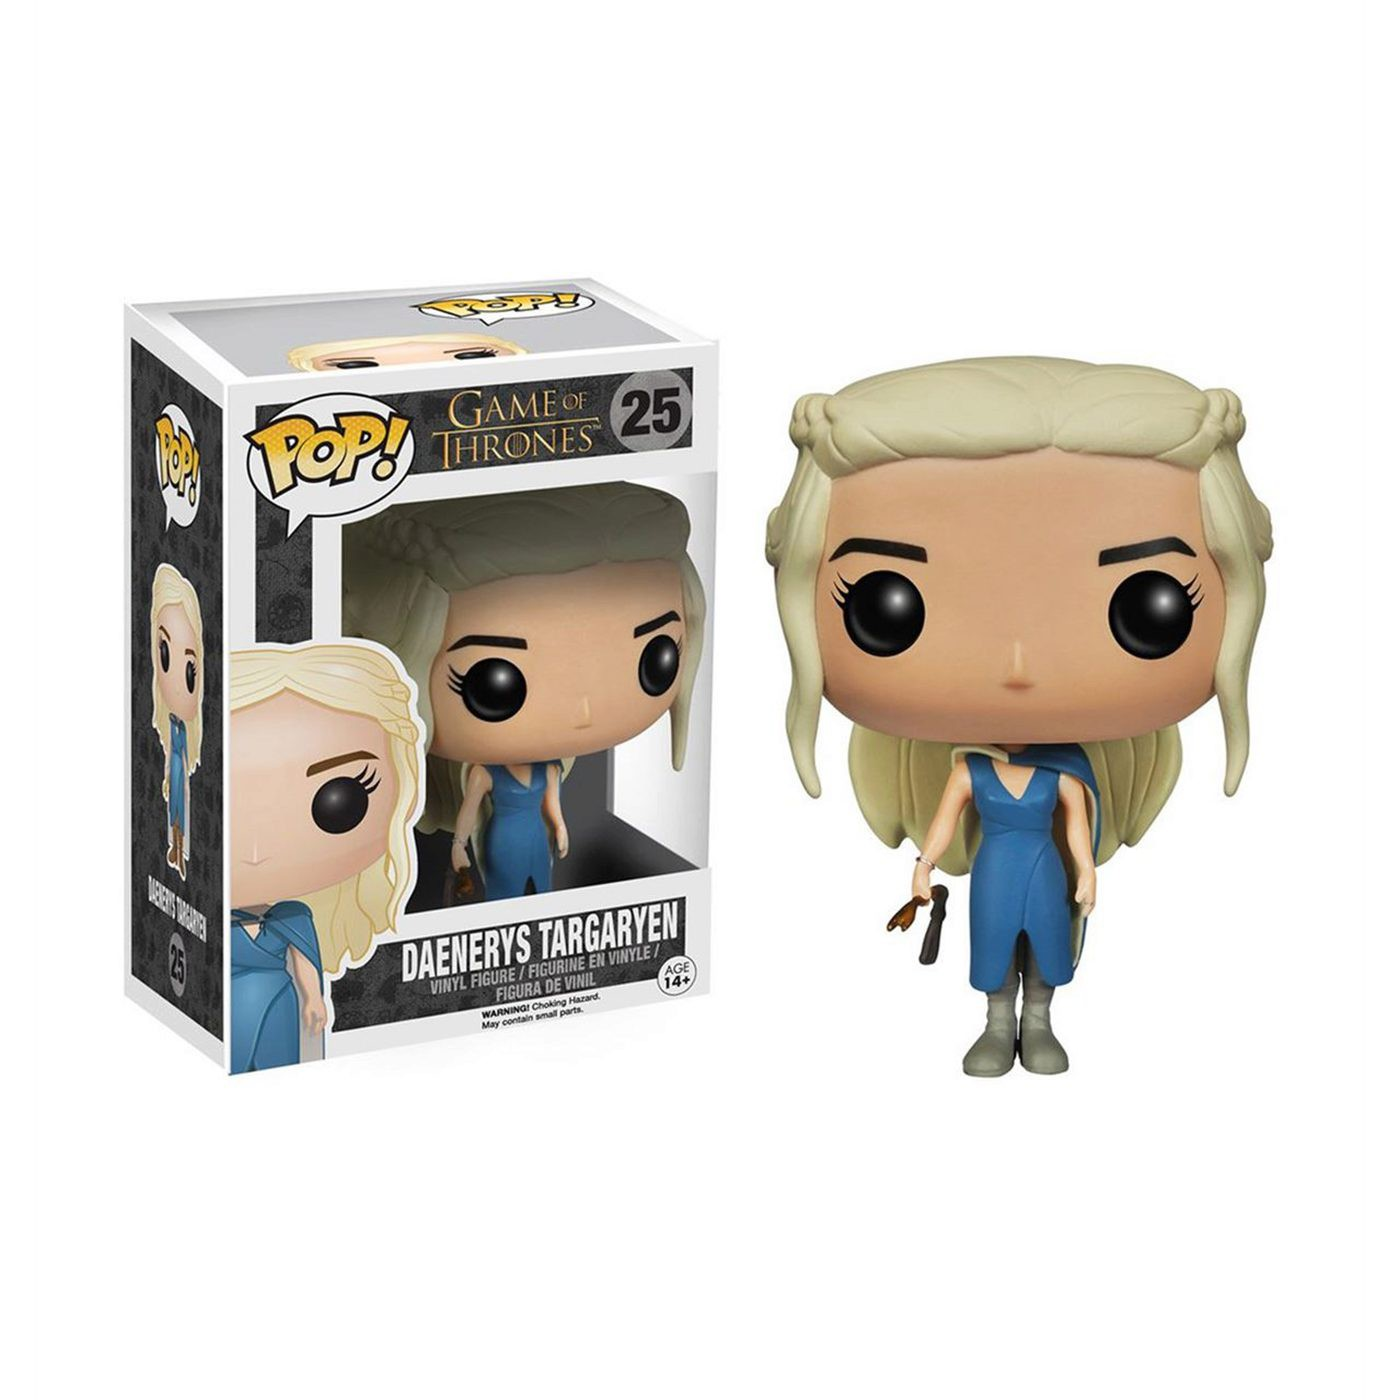 GOT Daenerys Targaryen Mother of Dragons Pop Vinyl